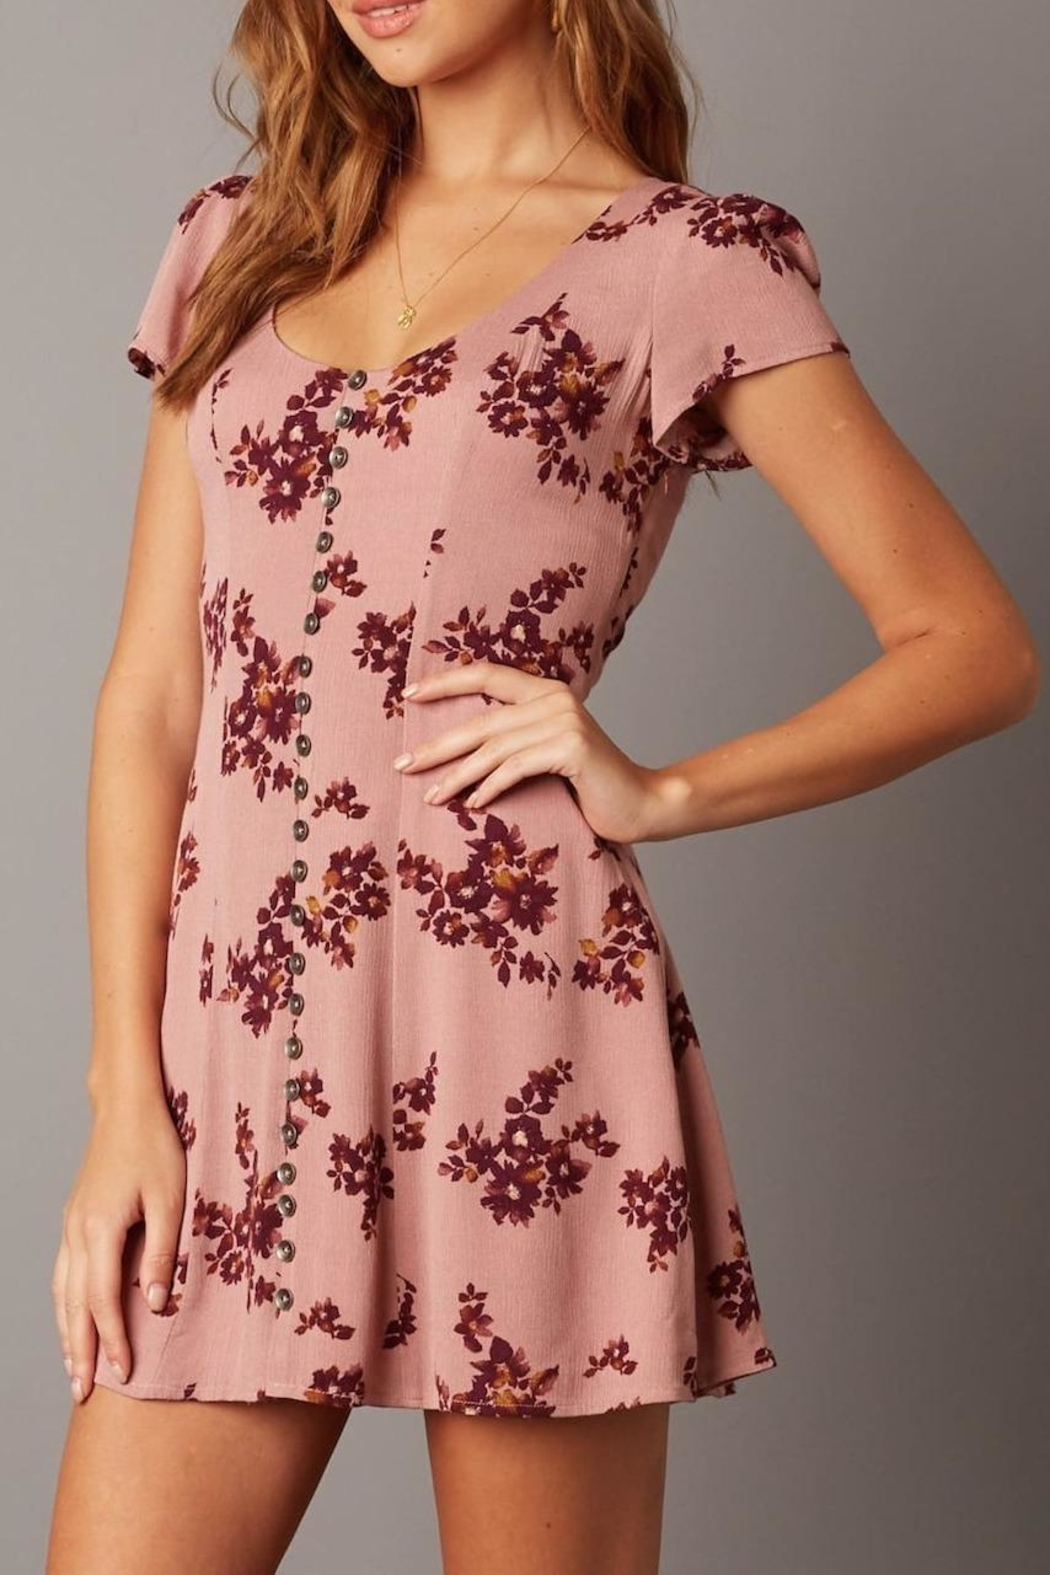 Cotton Candy Short-Sleeve Floral Dress - Main Image